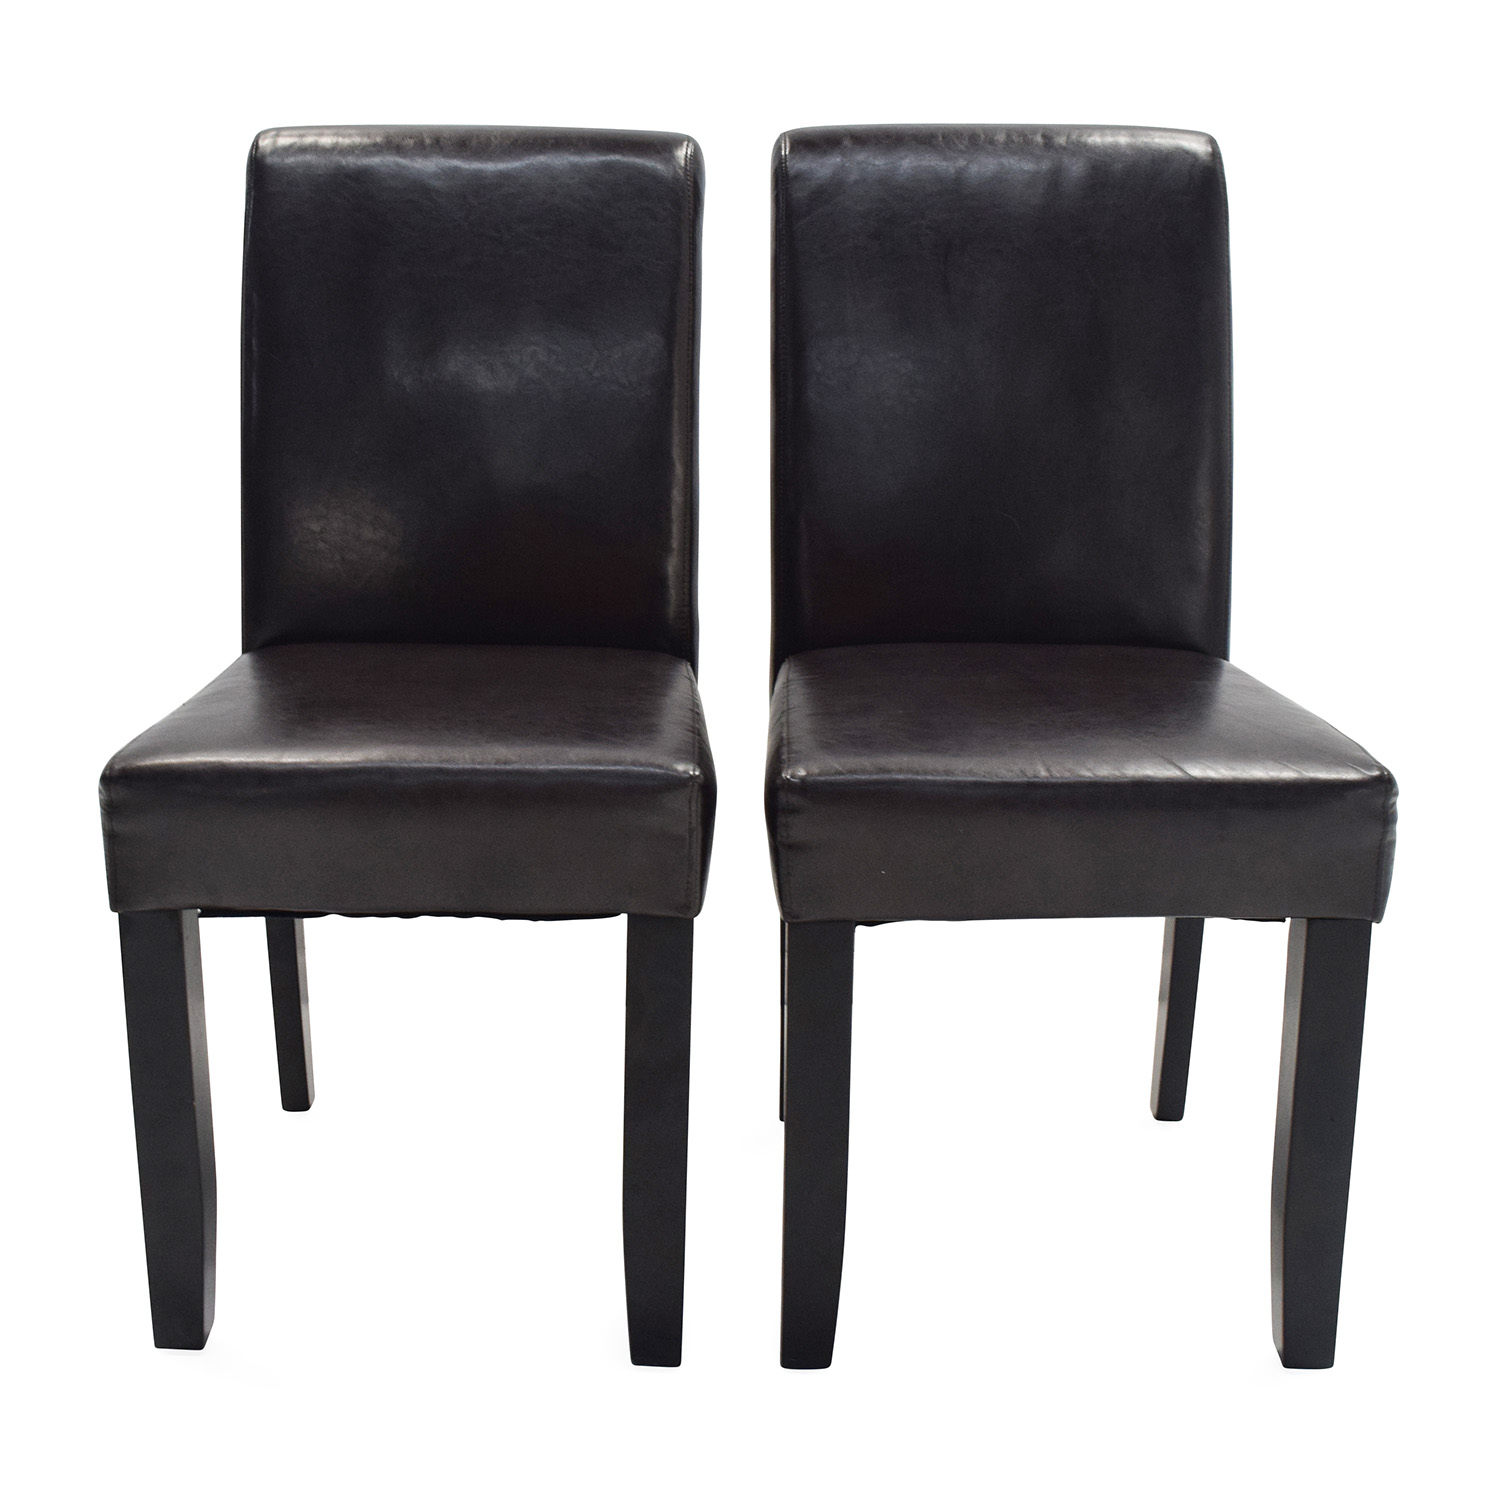 Unknown Brand Espresso Leather Dining Chairs Dark Chocolate